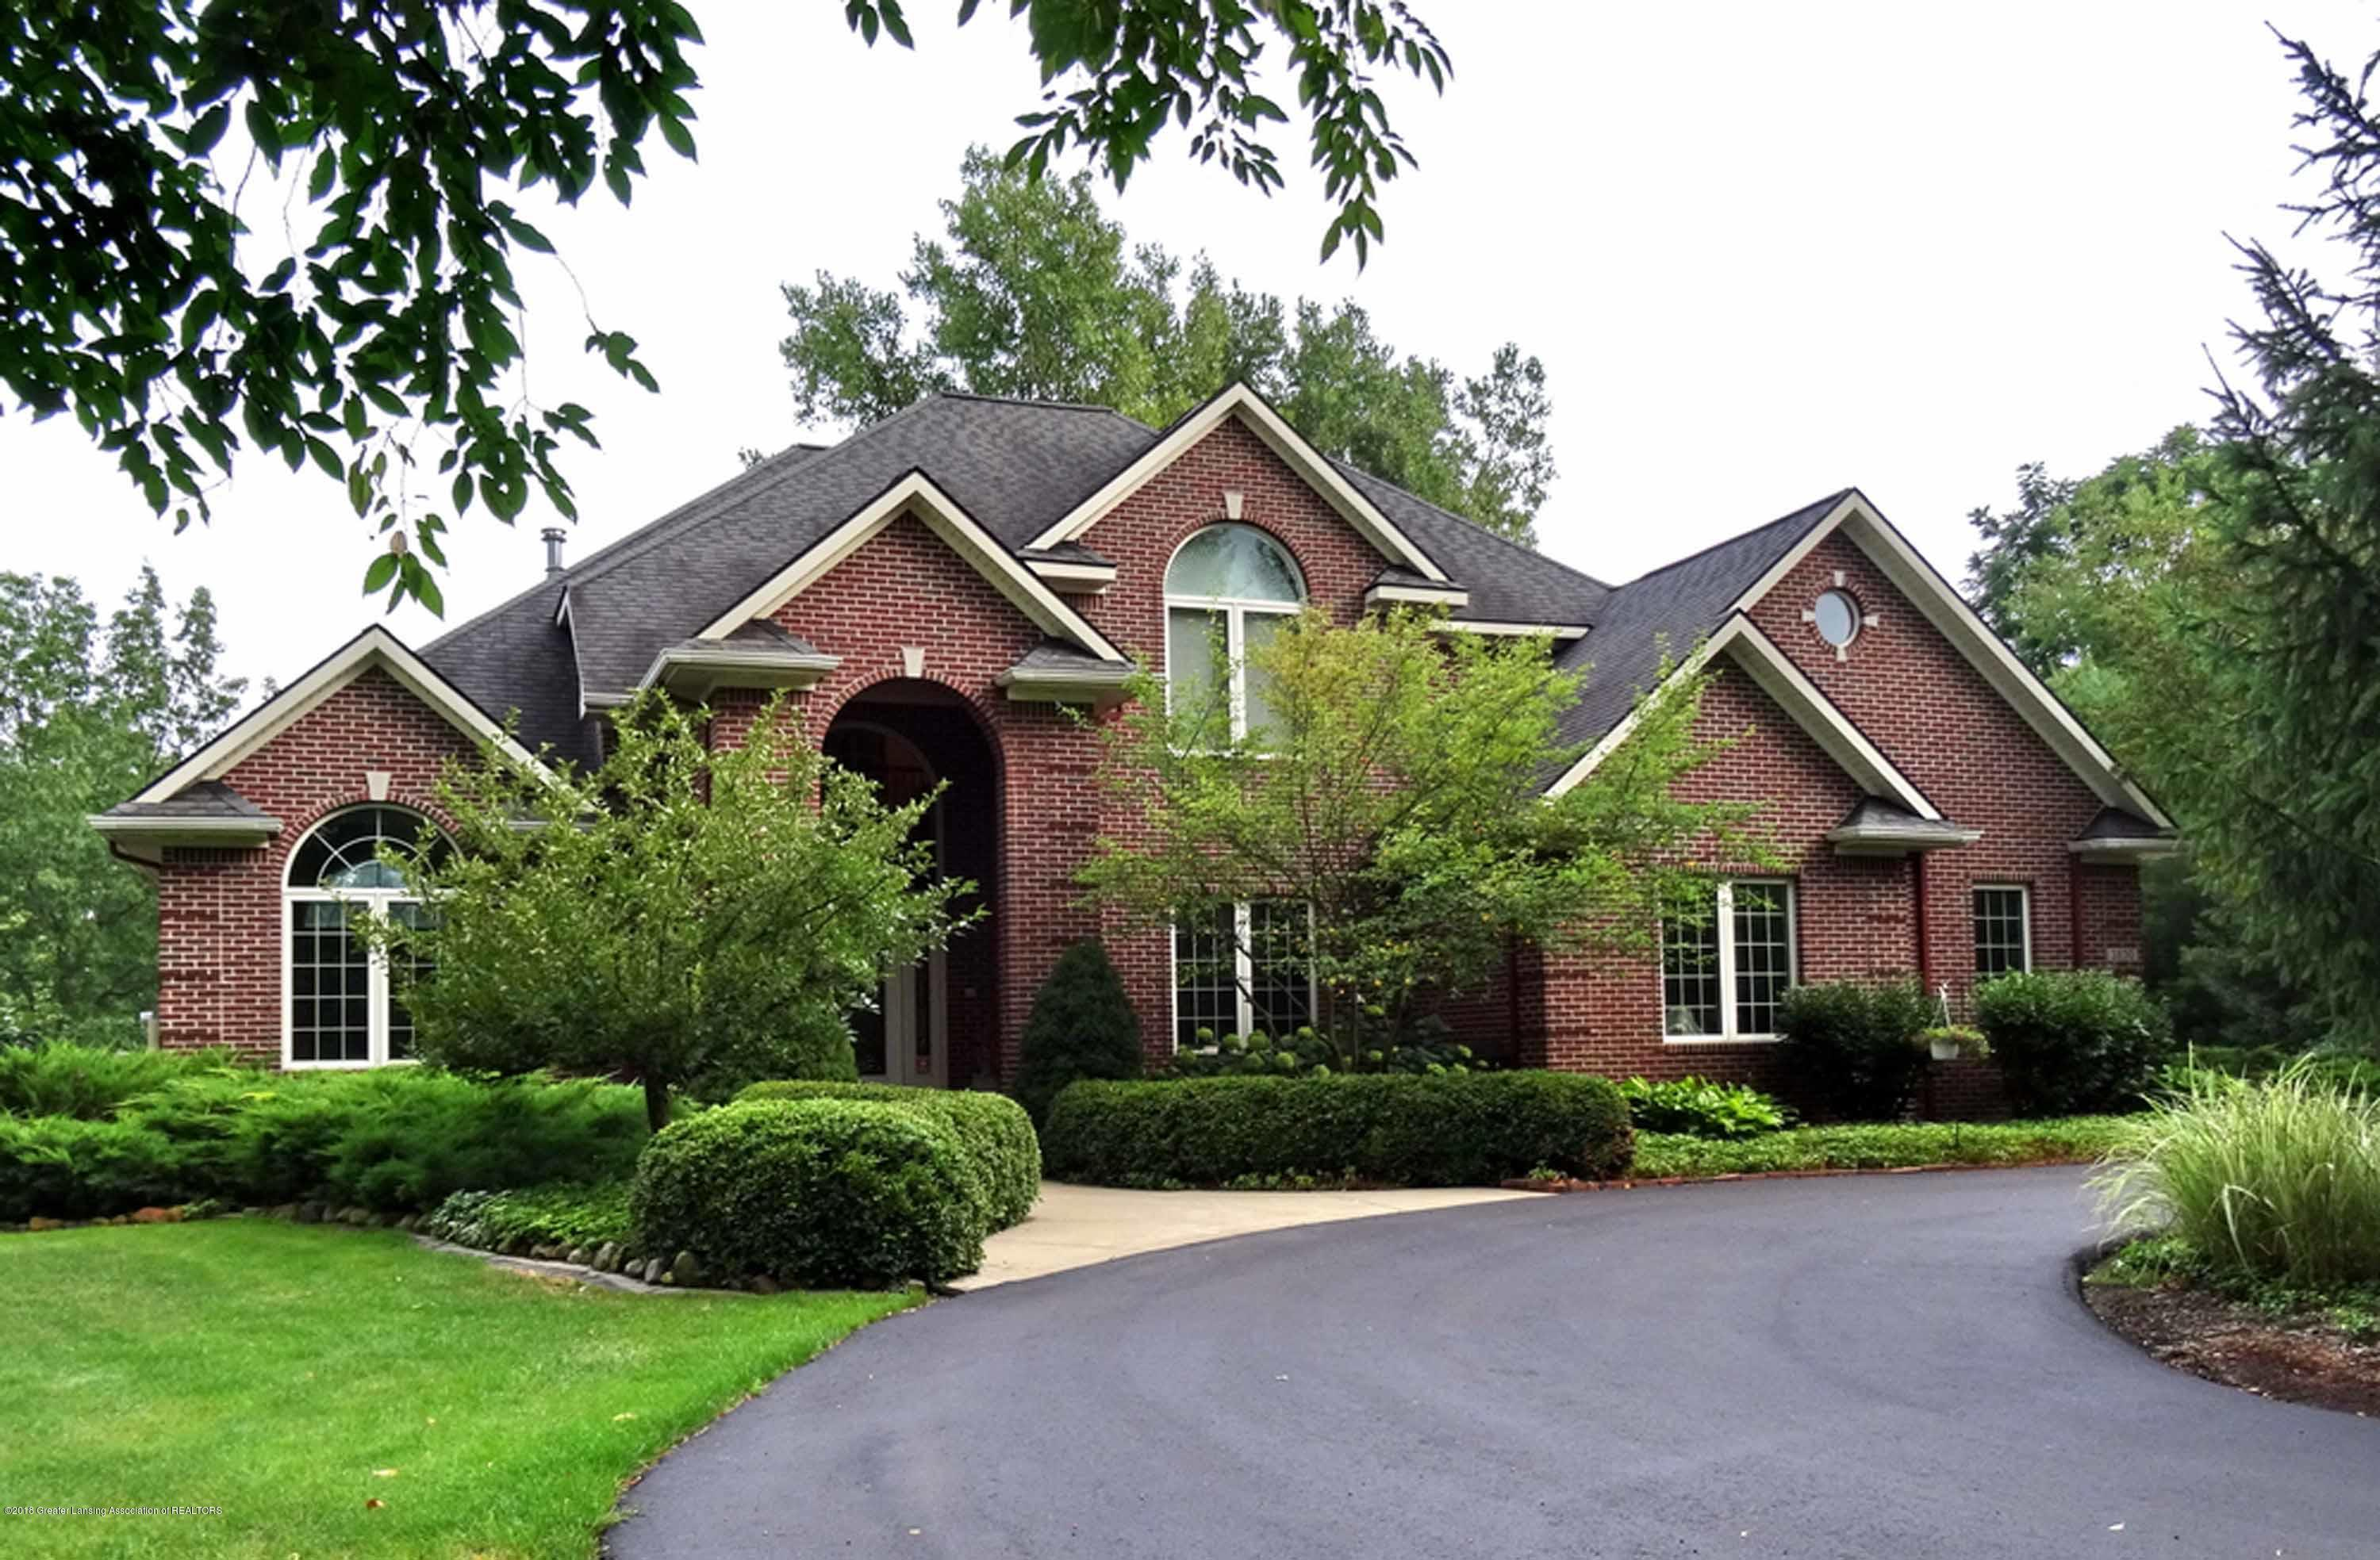 3830 Winsome Way - 3830 Winsome Way Exterior 2 - 1